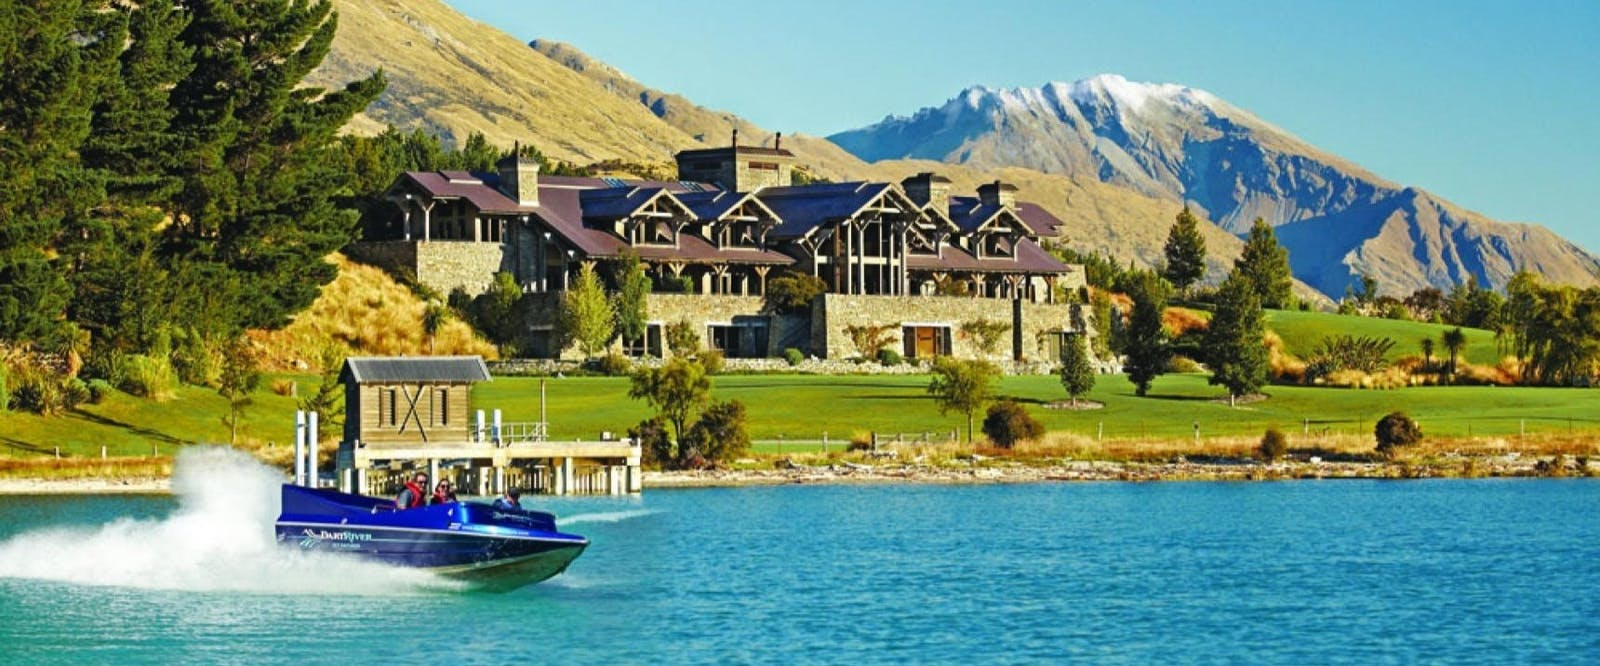 Jet Boating at Blanket Bay, Glenorchy